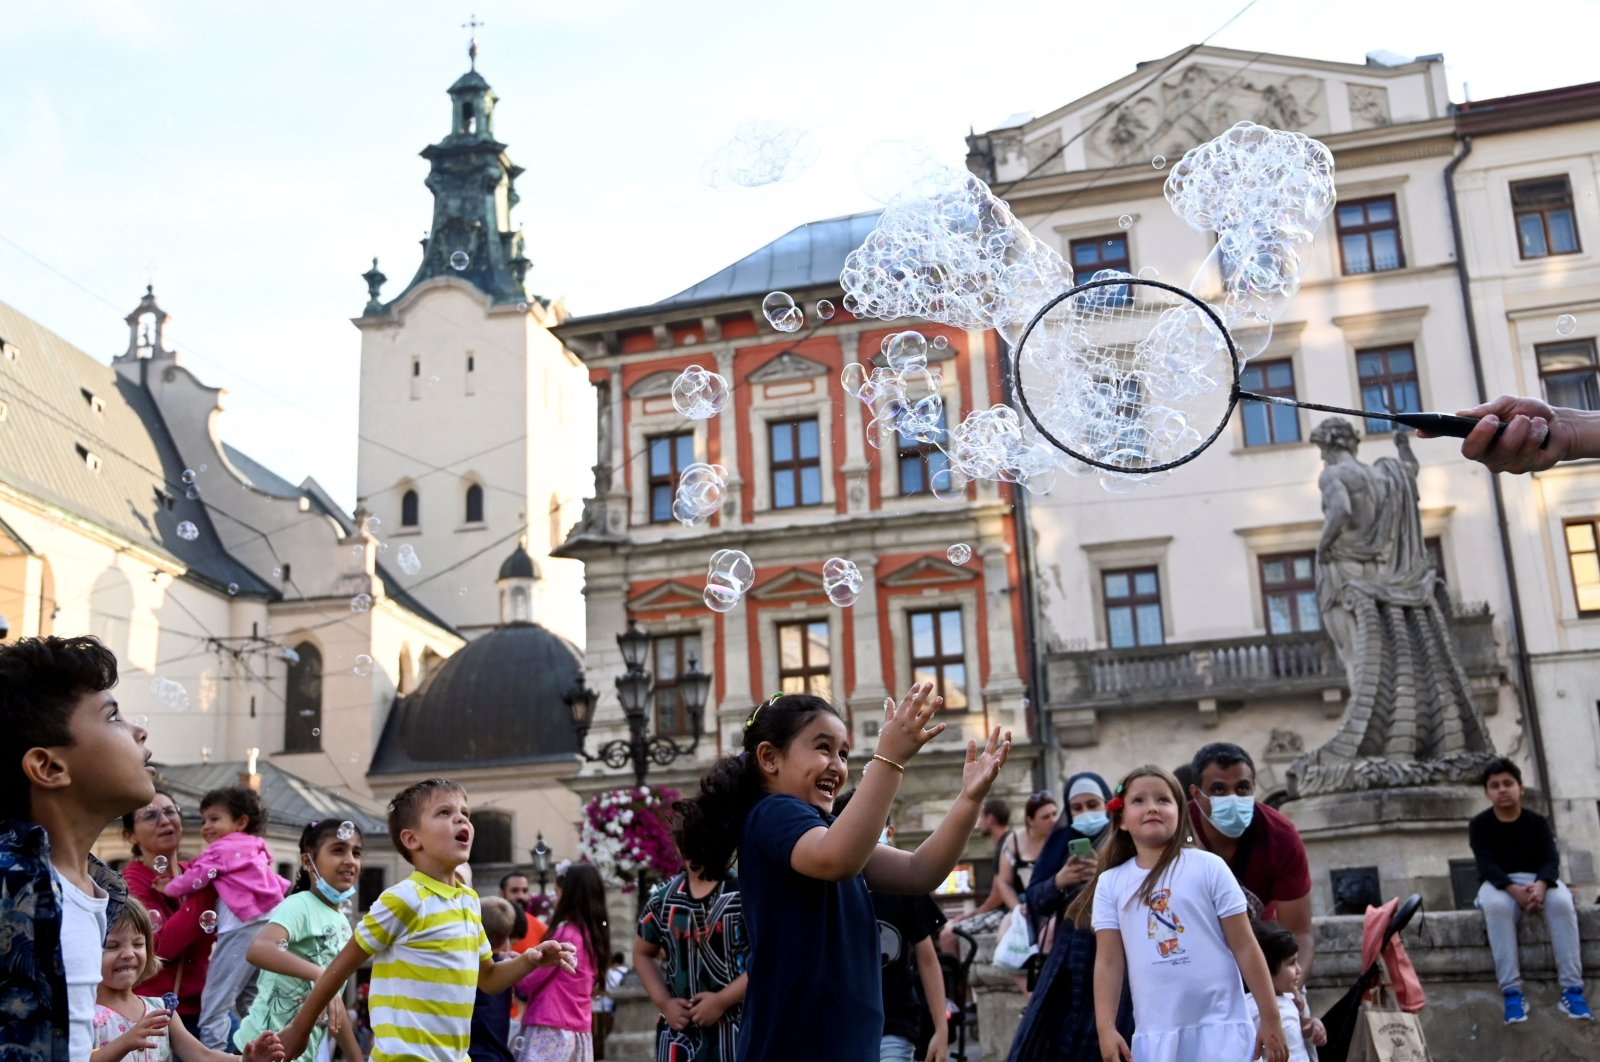 Middle Eastern tourists play with bubbles in Lviv, Ukraine, Aug. 14, 2021. (AFP Photo)